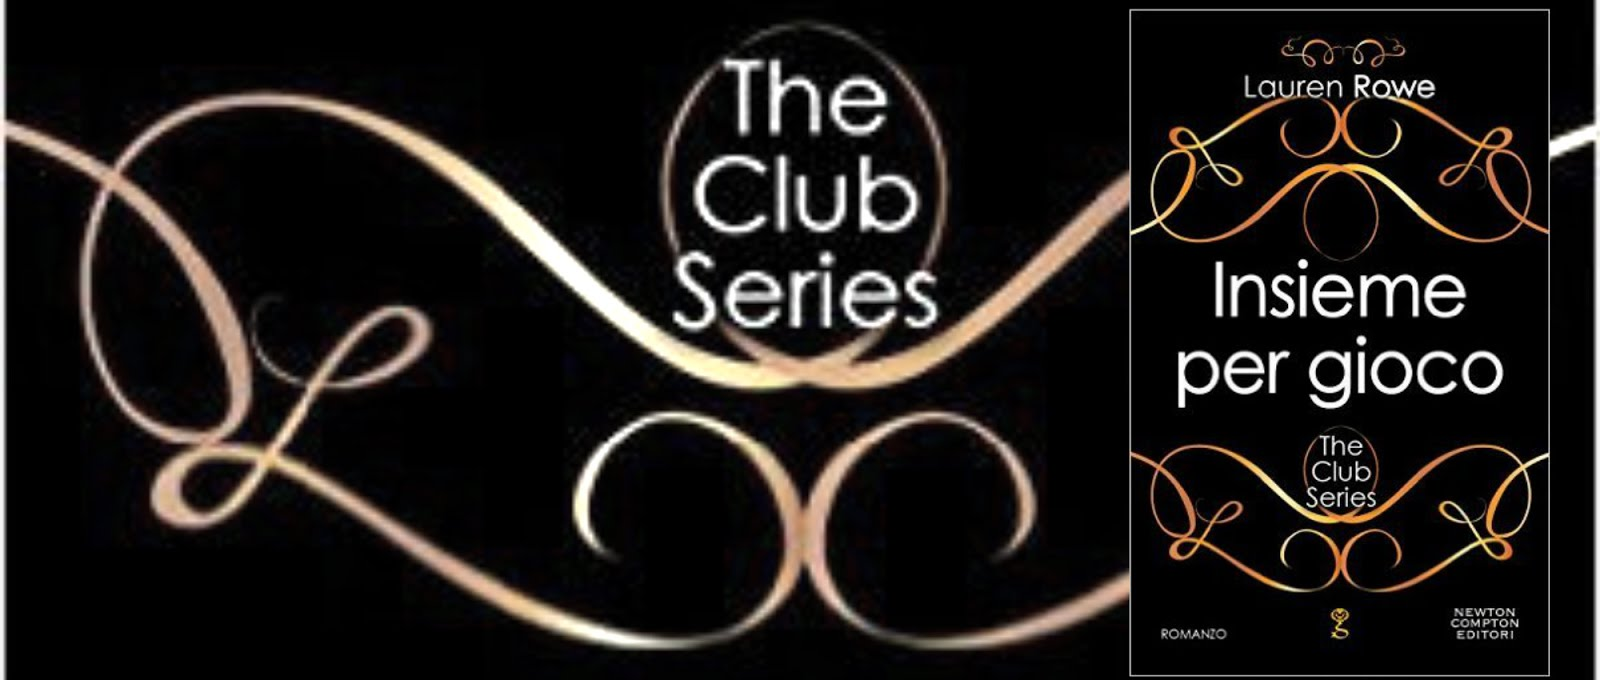 The Club Series